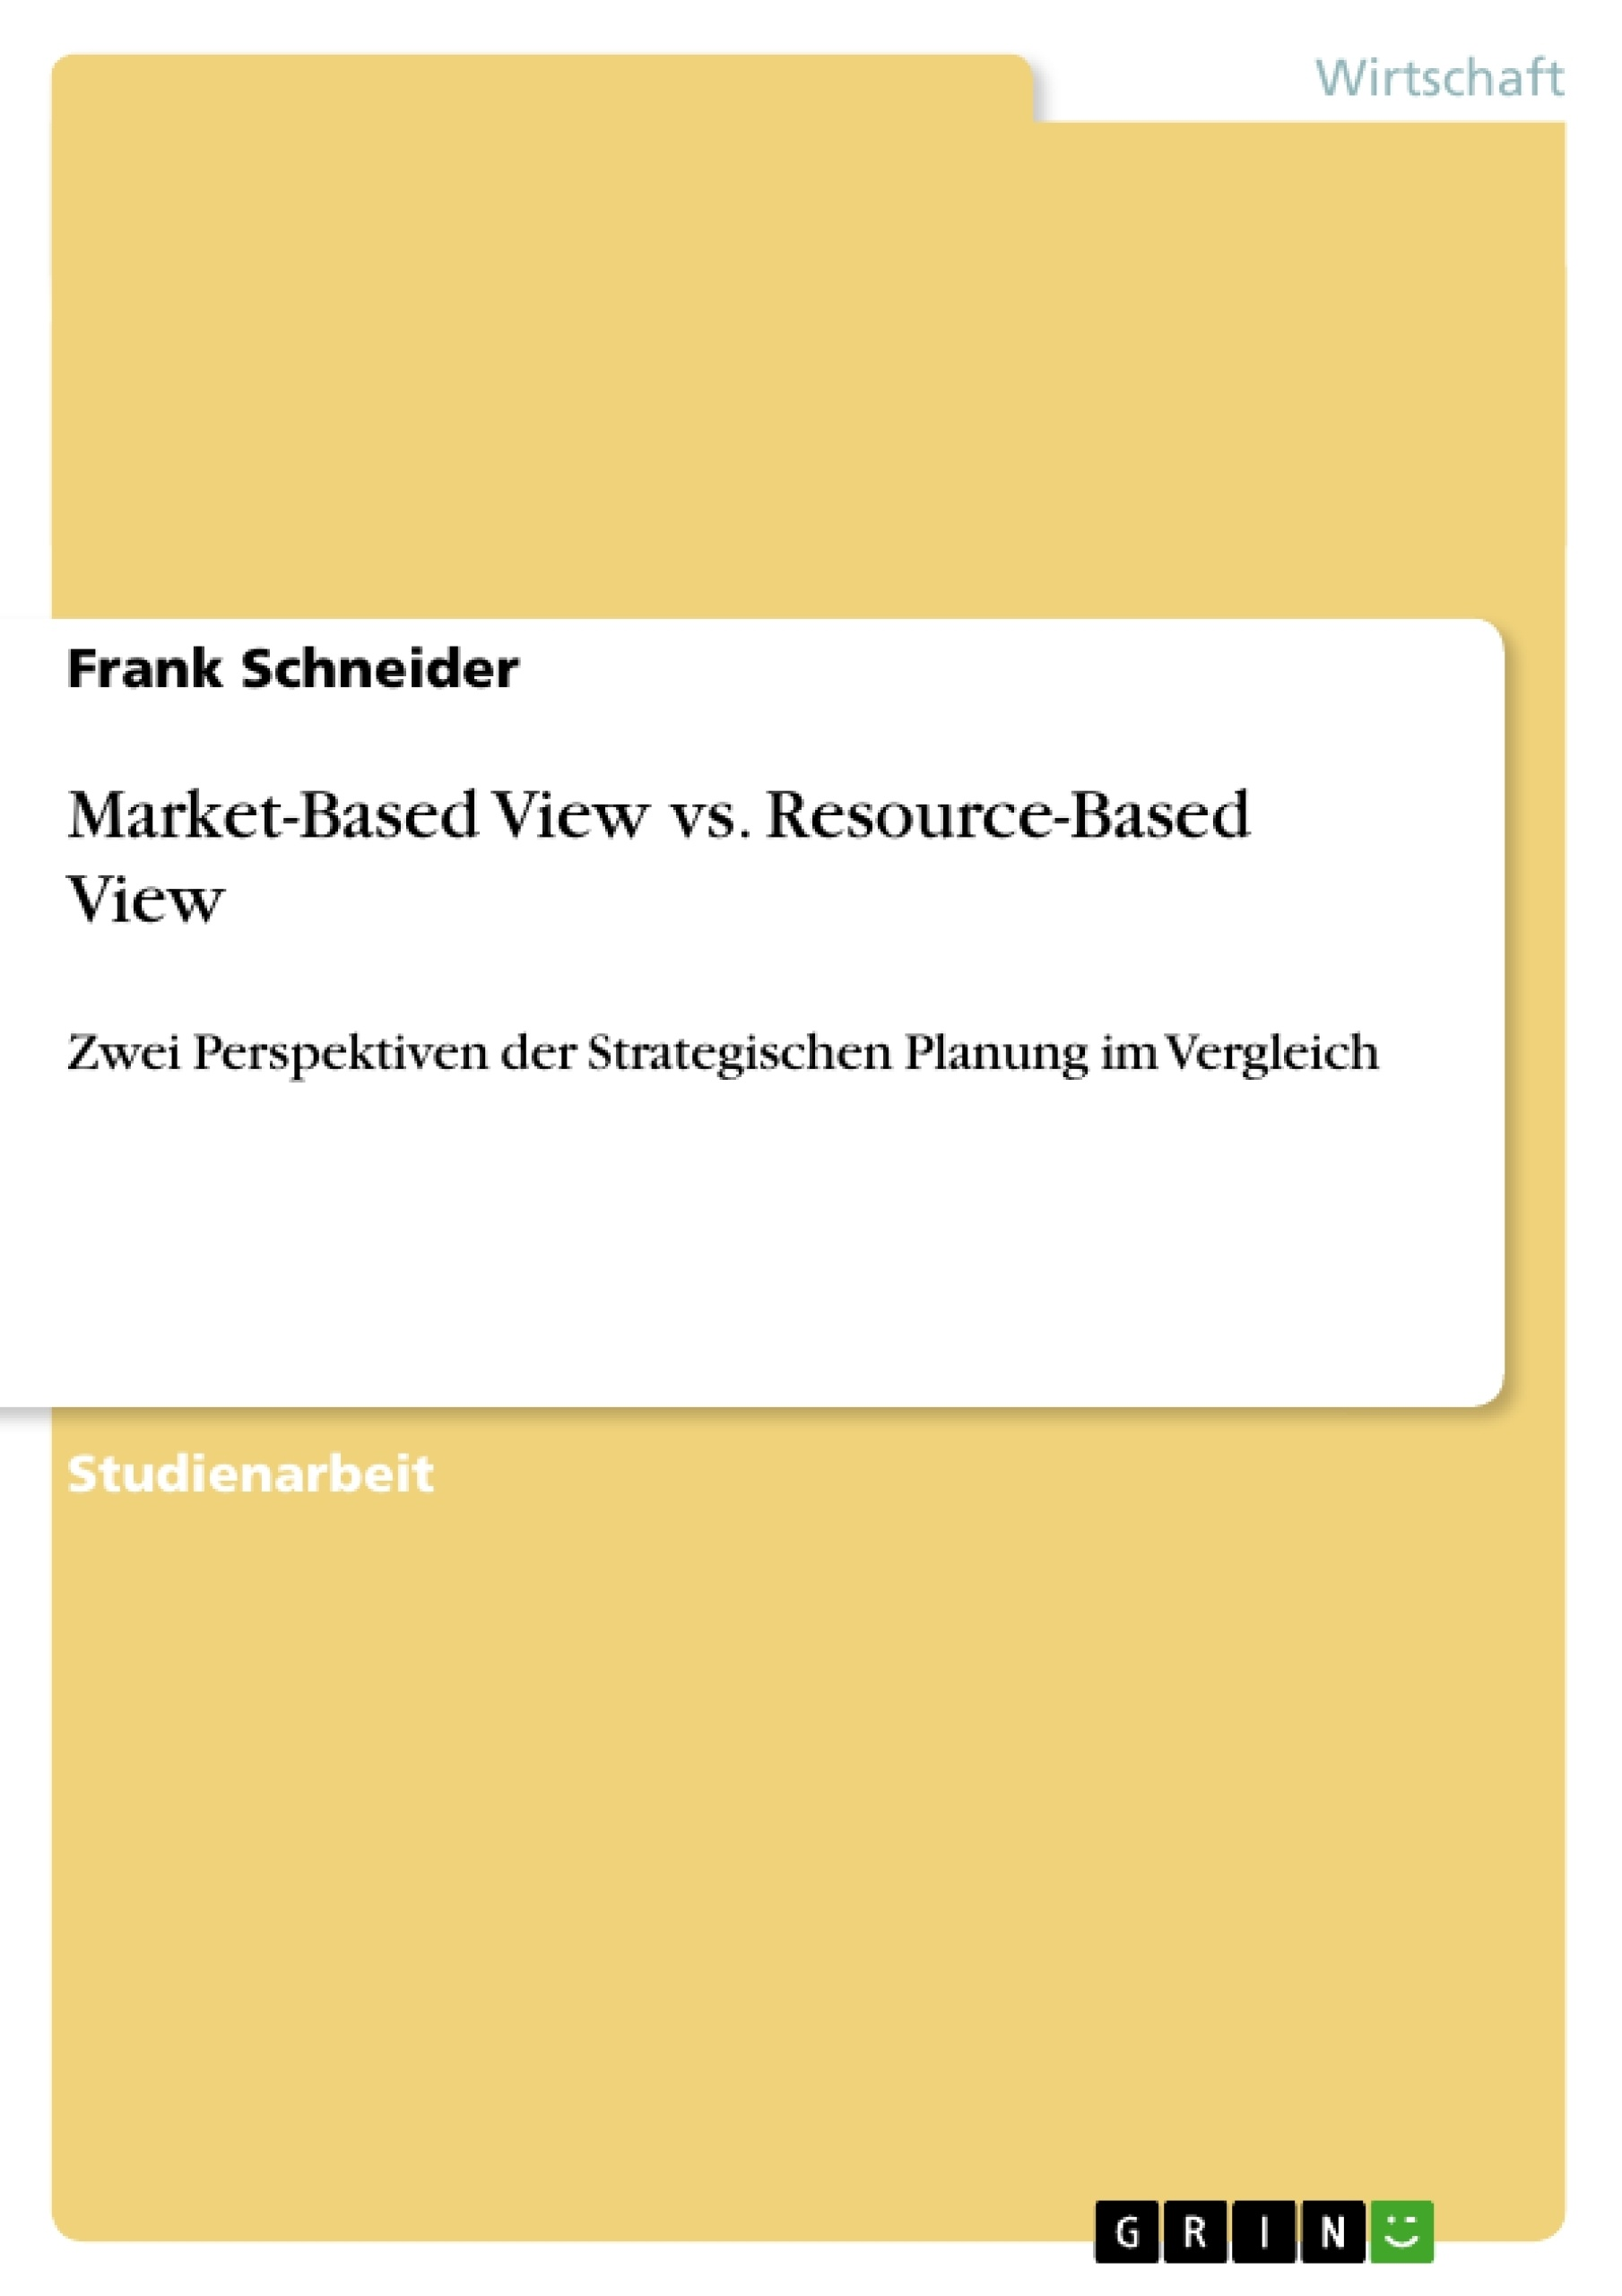 Titel: Market-Based View vs. Resource-Based View